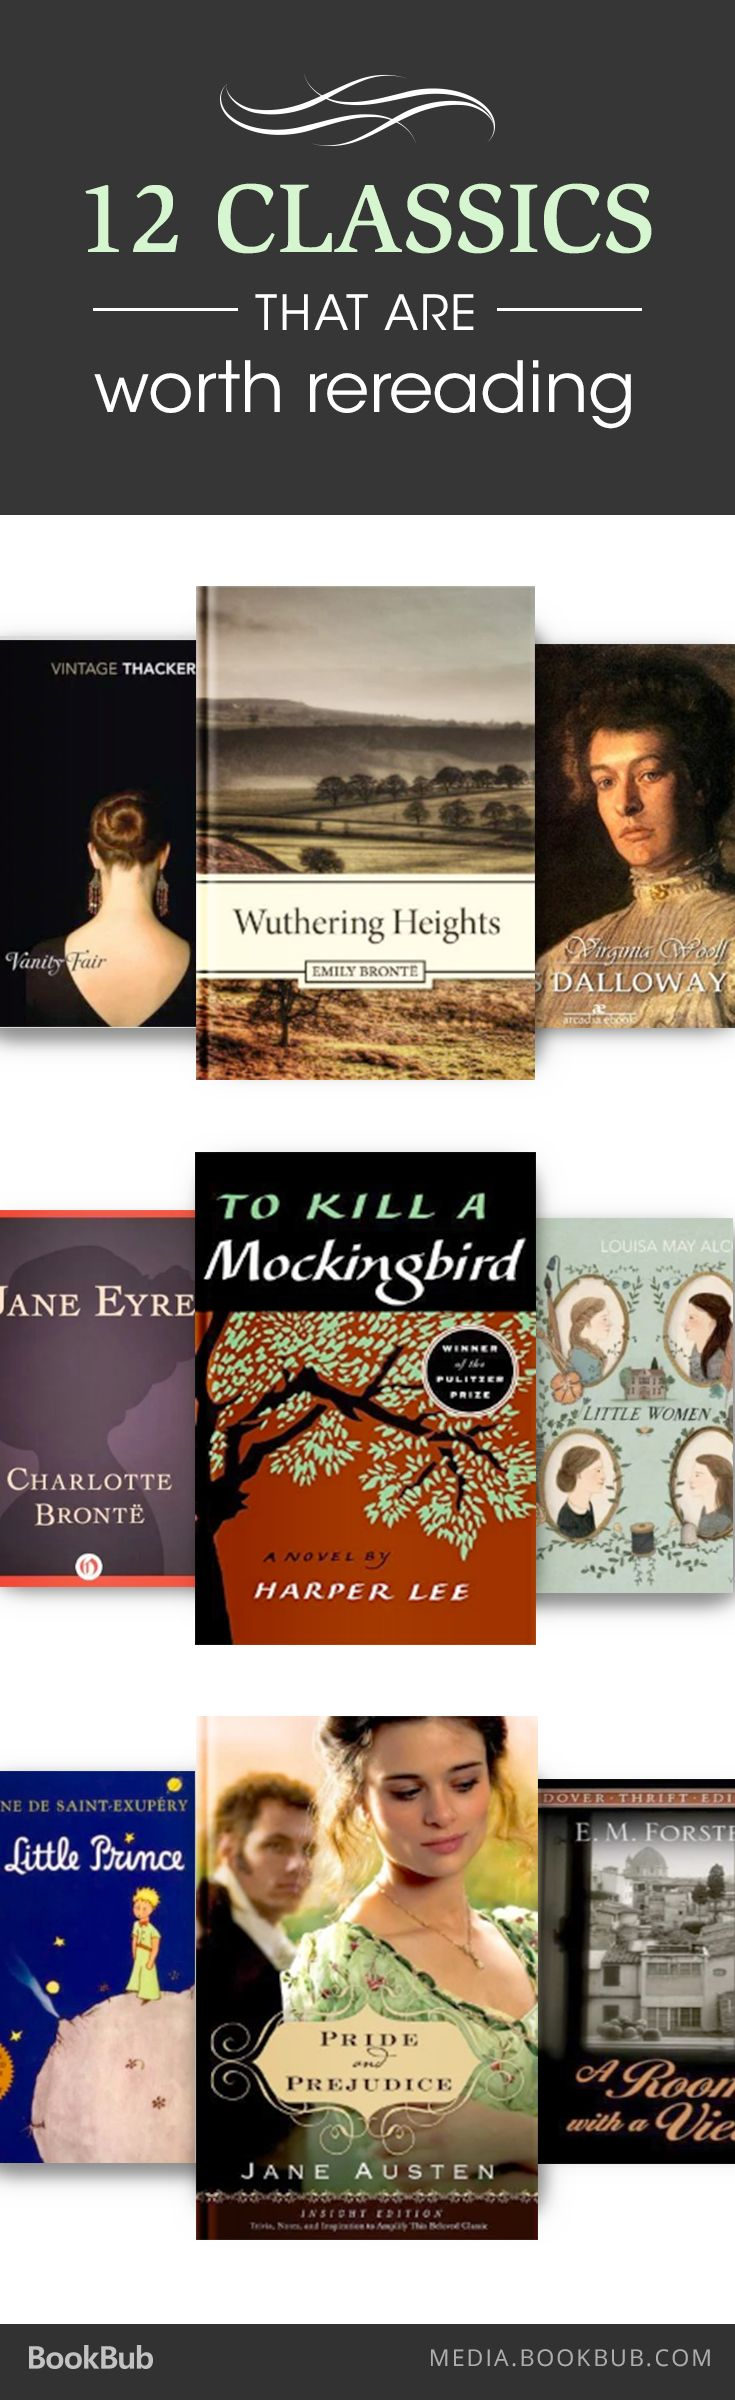 17 best ideas about kill a mockingbird to kill a 12 classics that are worth rereading in 2016